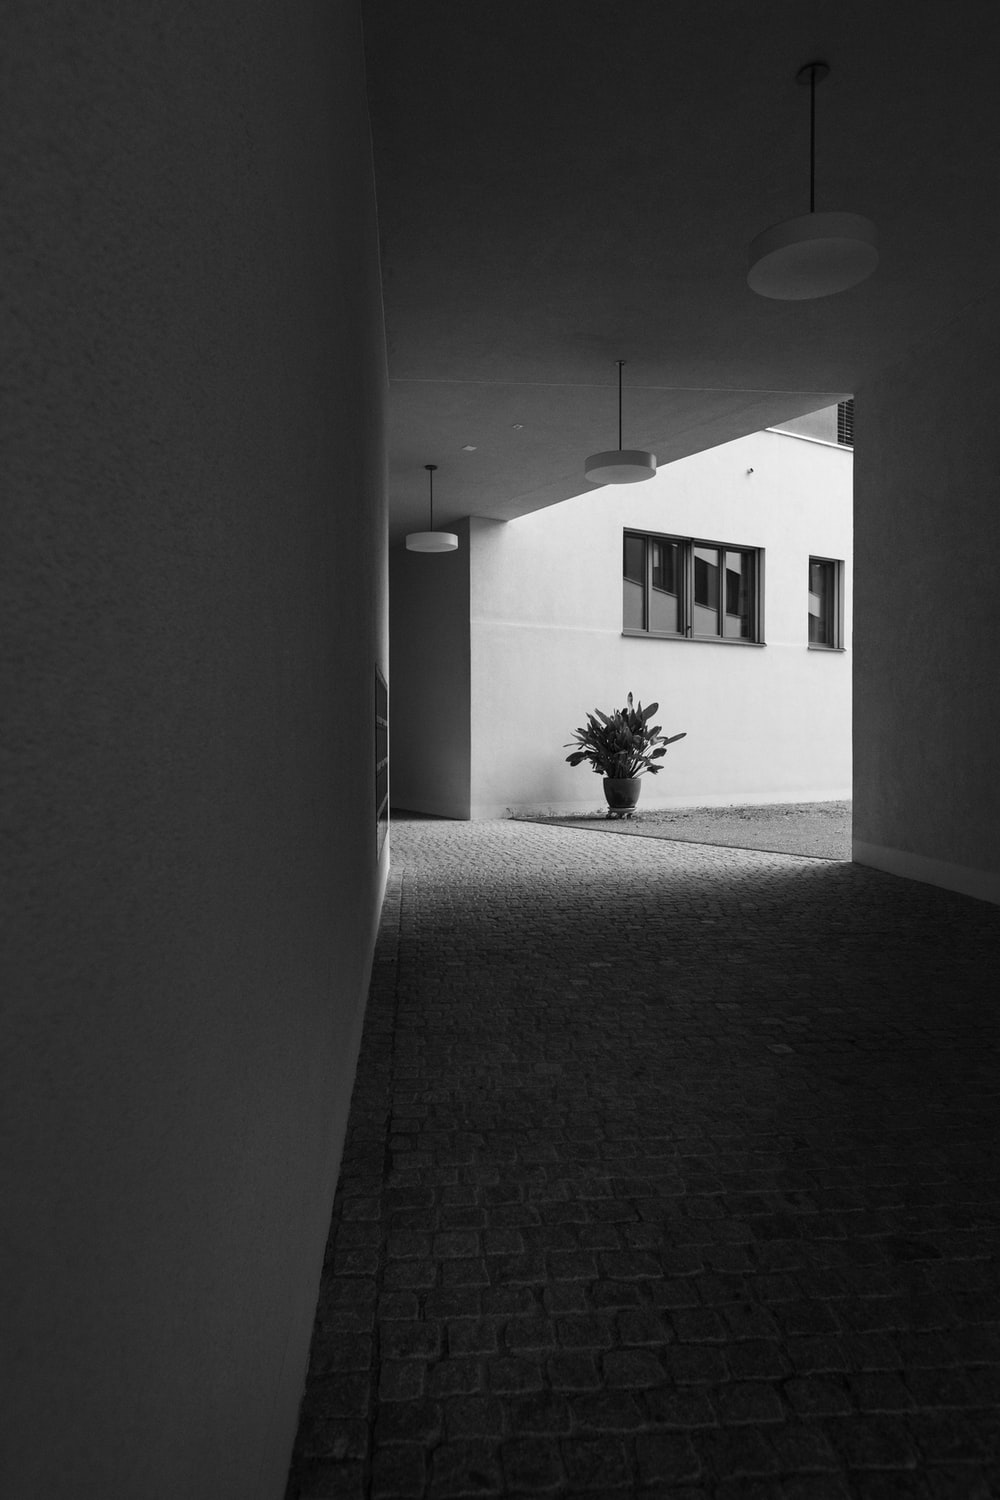 grayscale photo of hallway in room with pendant lamp